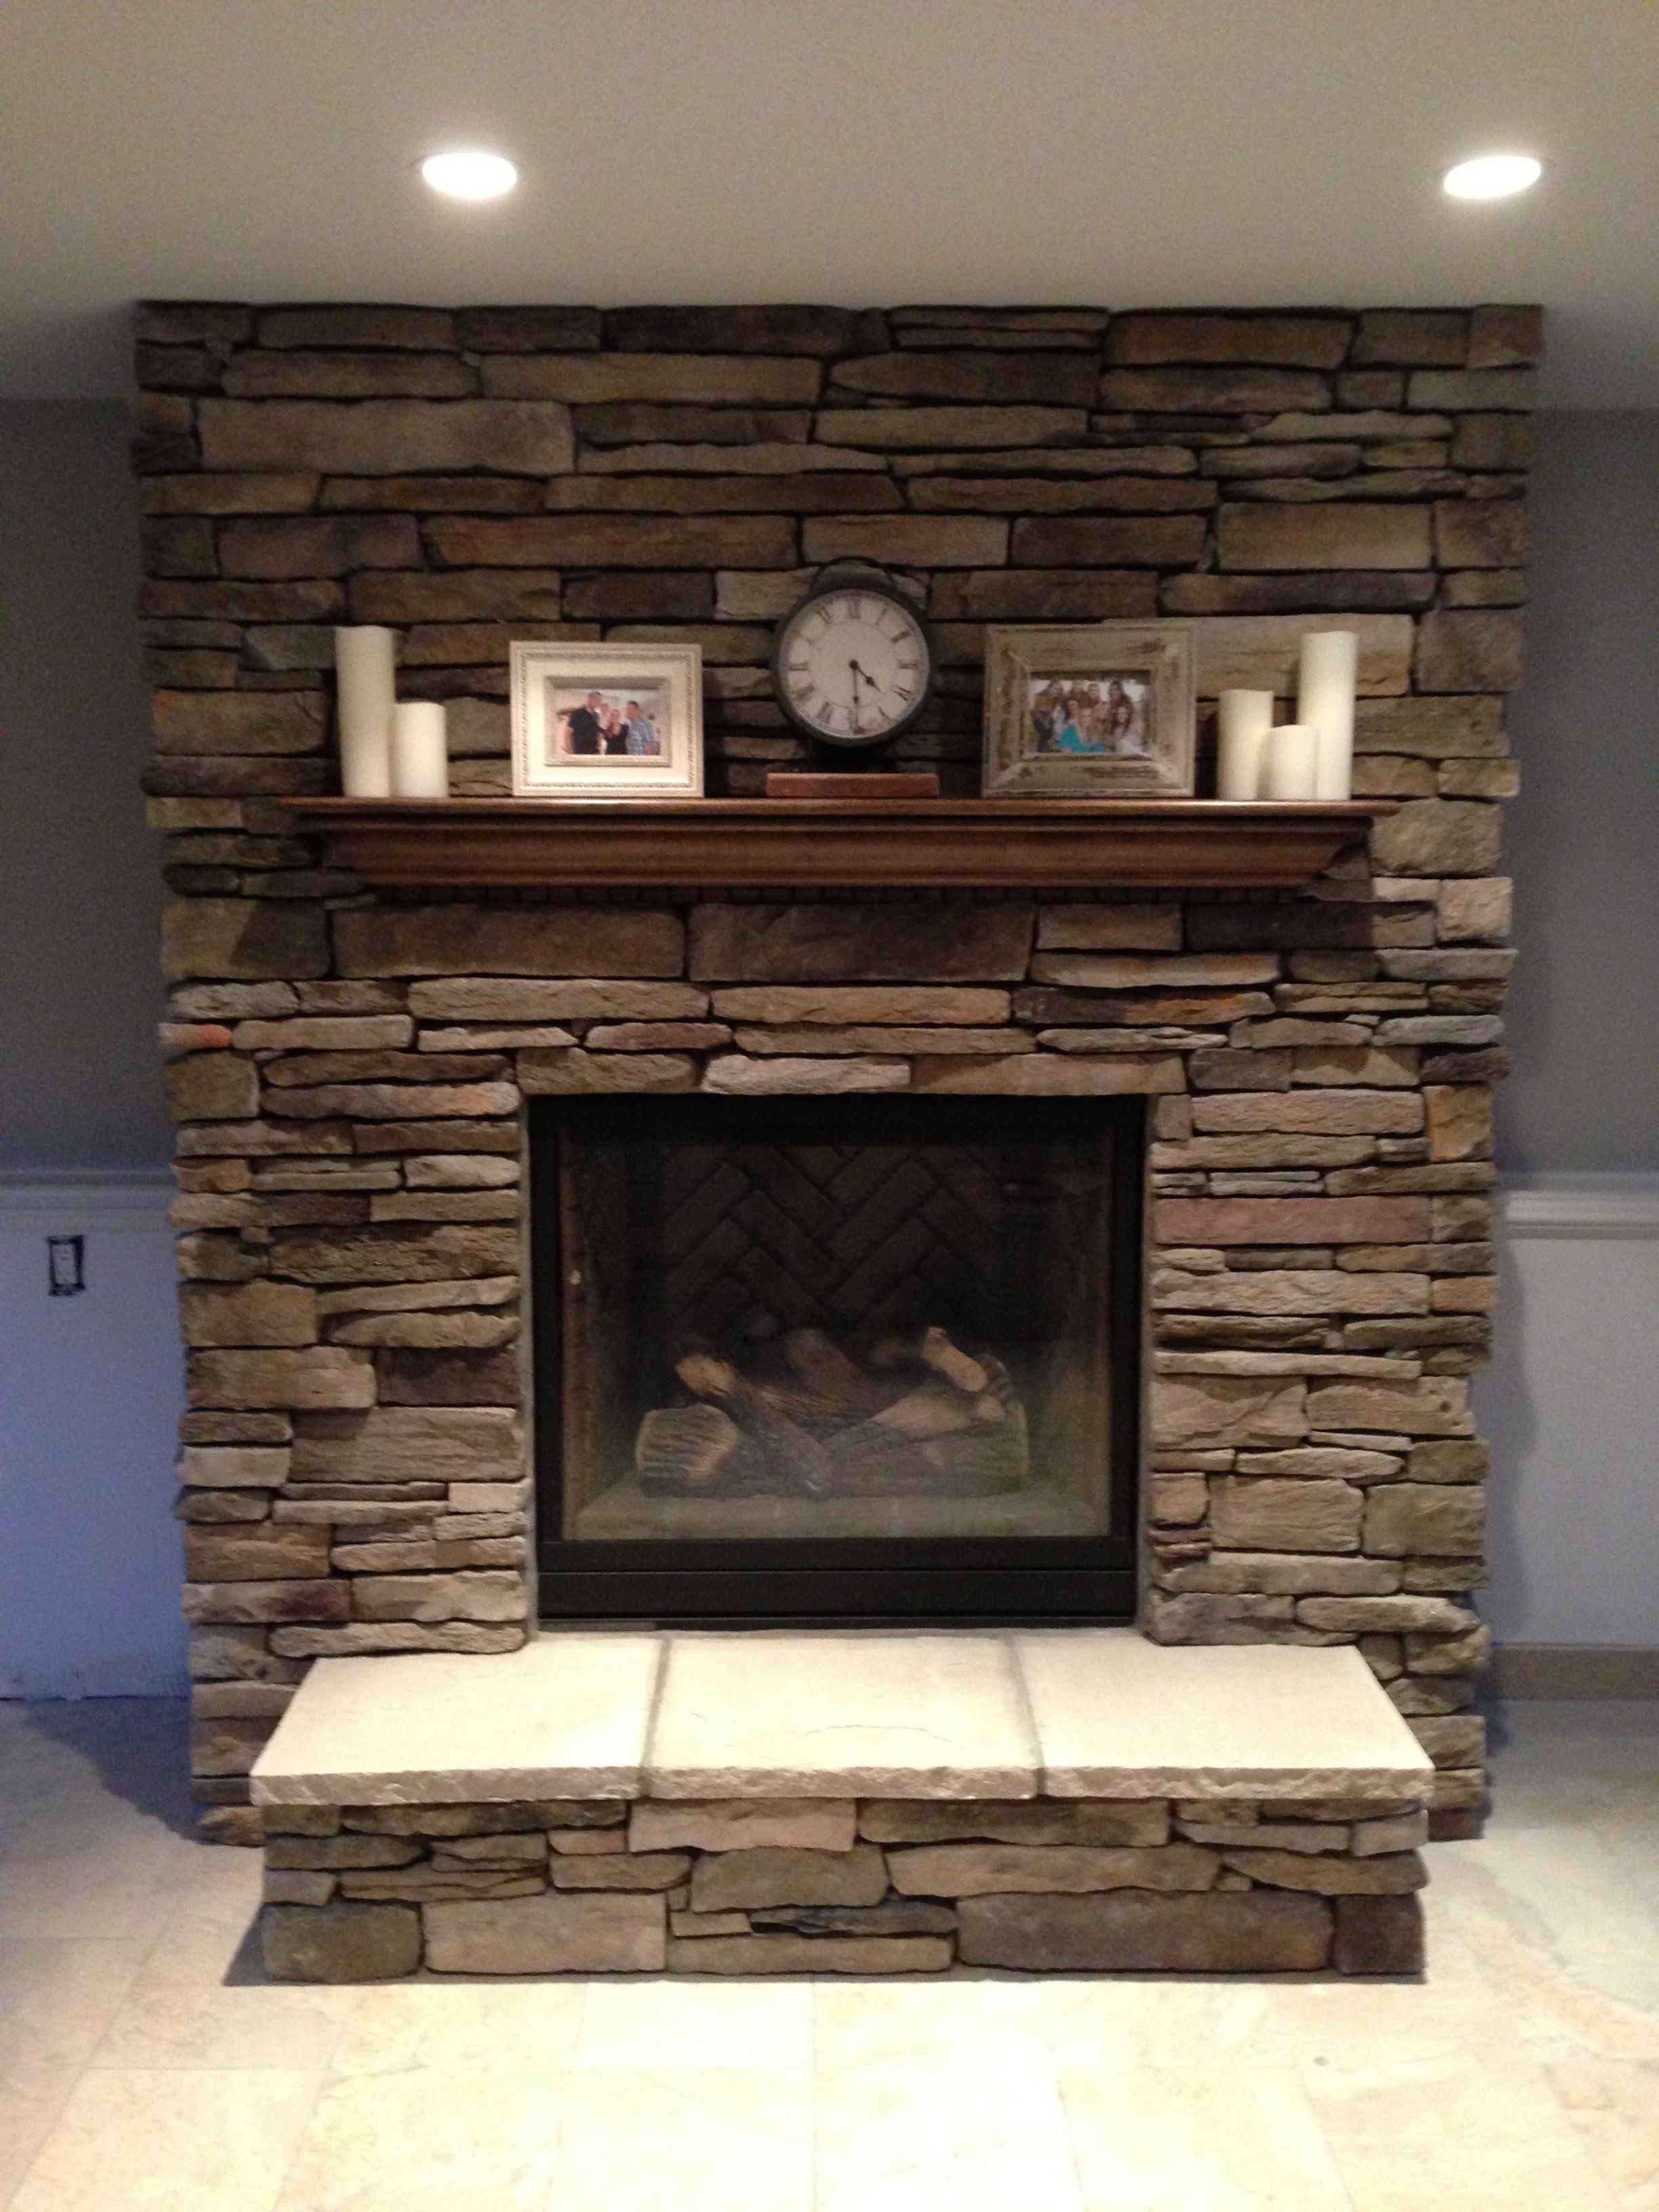 Our new brick fireplace decorated! #fireplace #mantel #brick ...